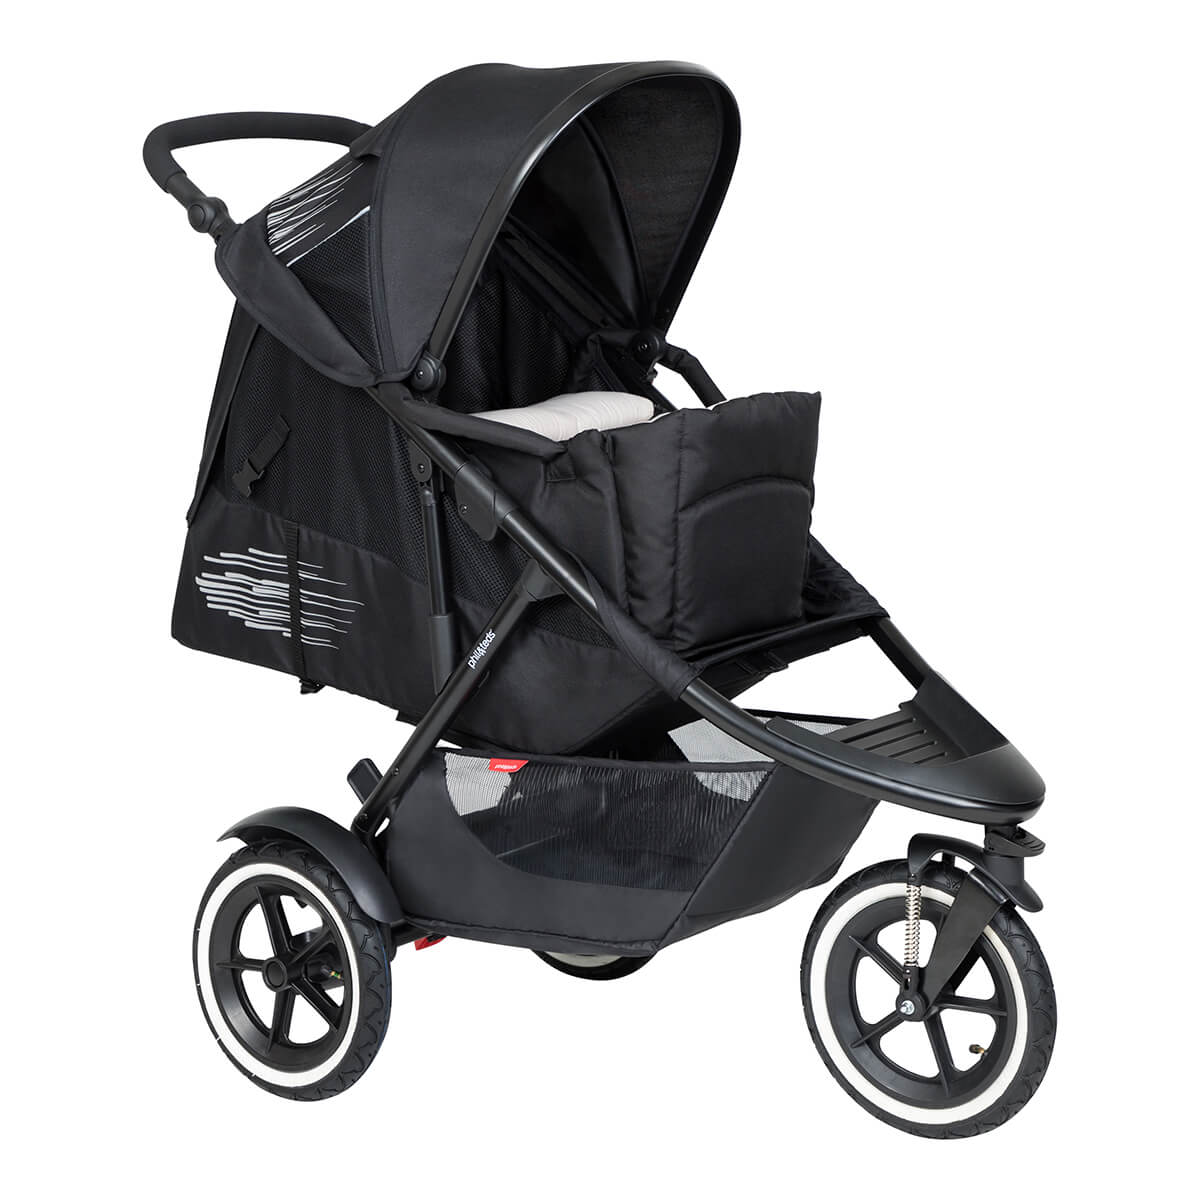 https://cdn.accentuate.io/4546157871209/19119322529897/philteds-sport-buggy-with-cocoon-full-recline-v1625778310068.jpg?1200x1200